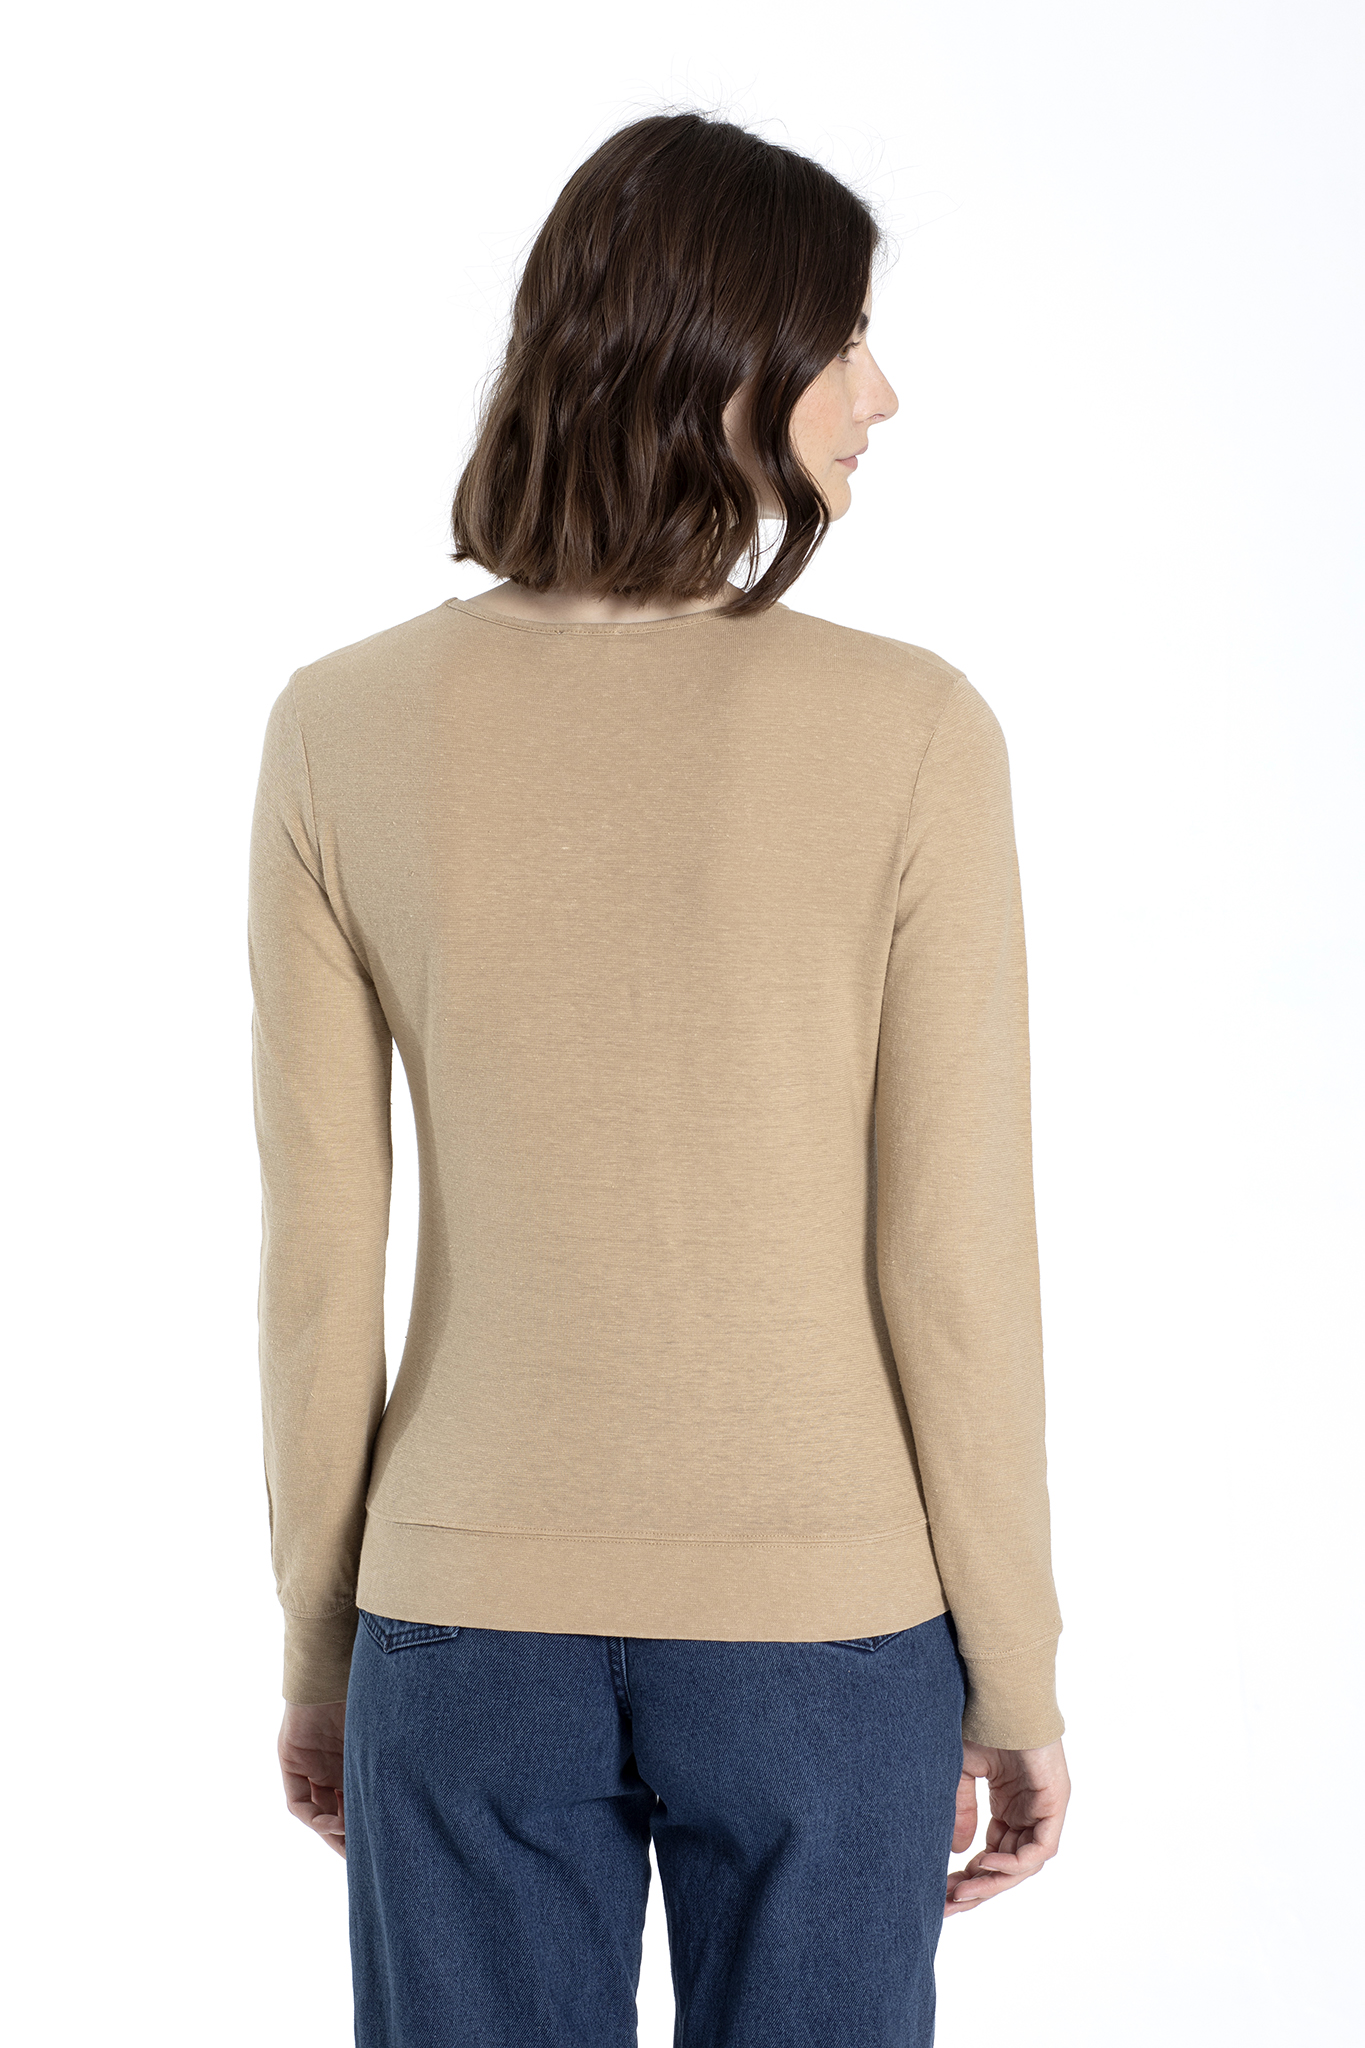 Long Sleeve Top - Mira - Lark Beige